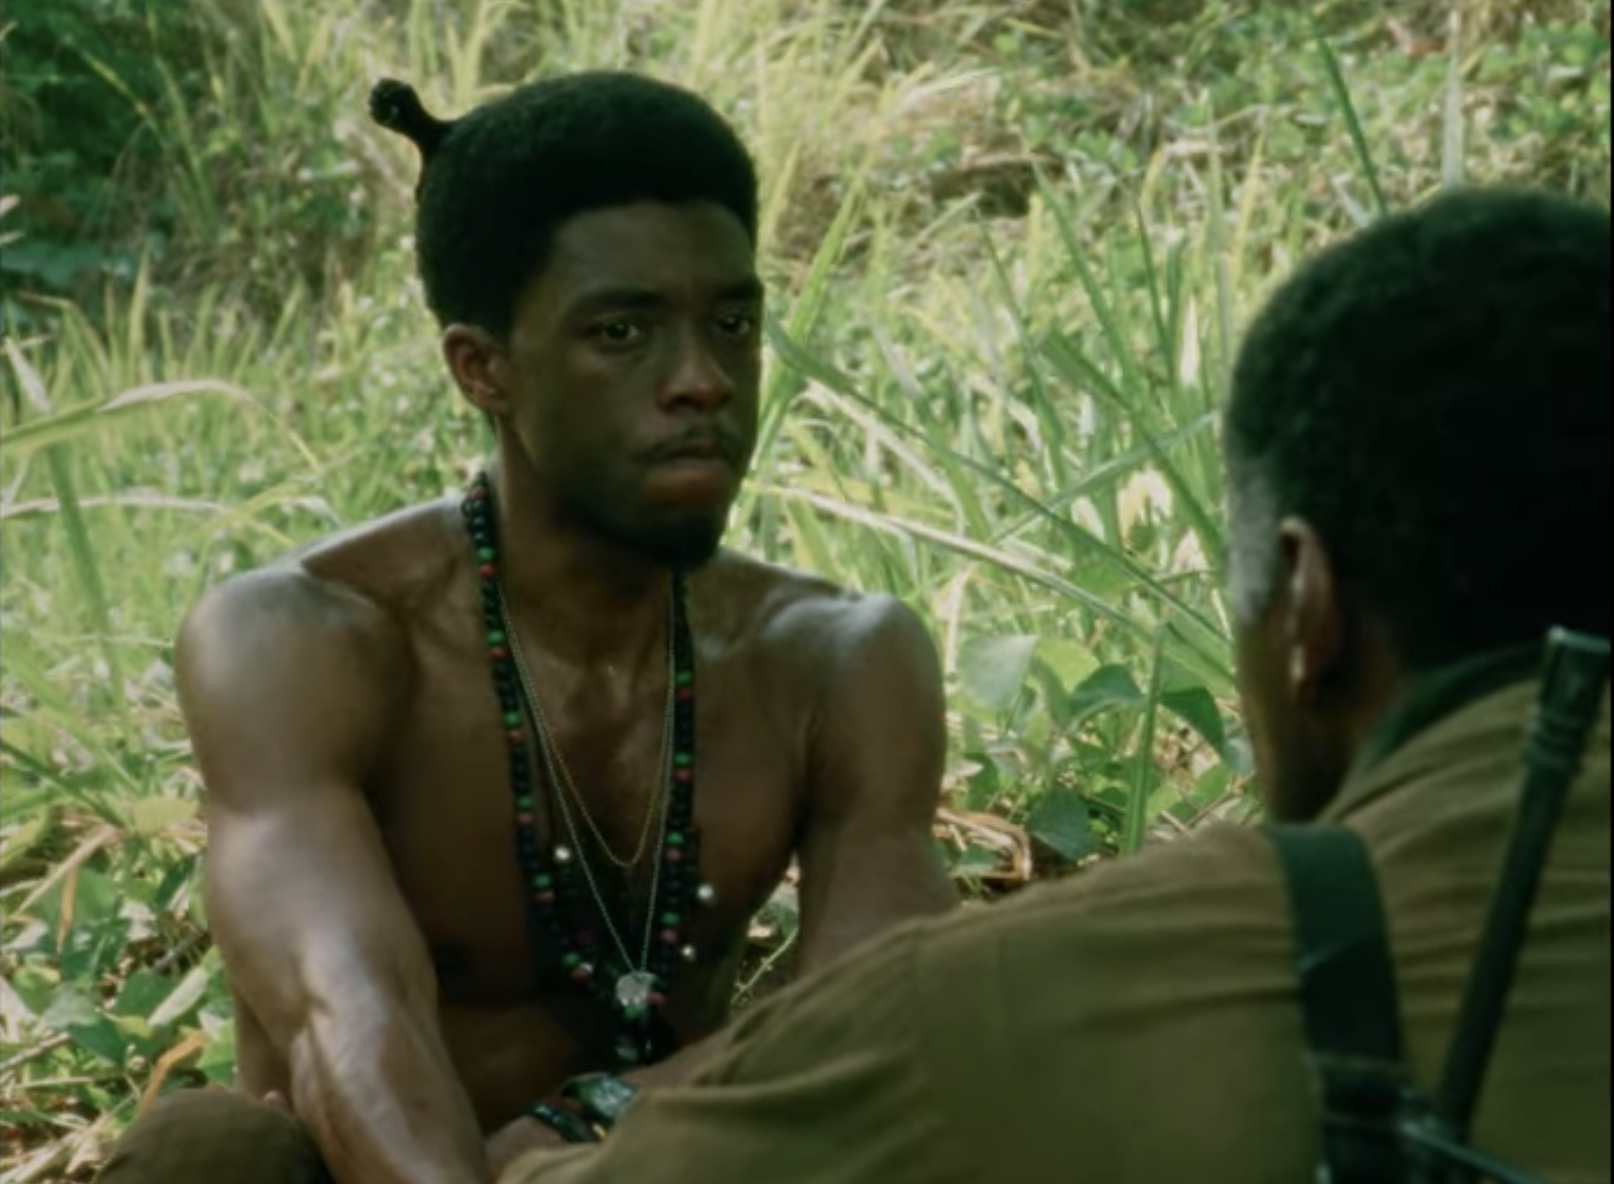 Chadwick shirtless with an afro pick in his hair sitting in the jungle